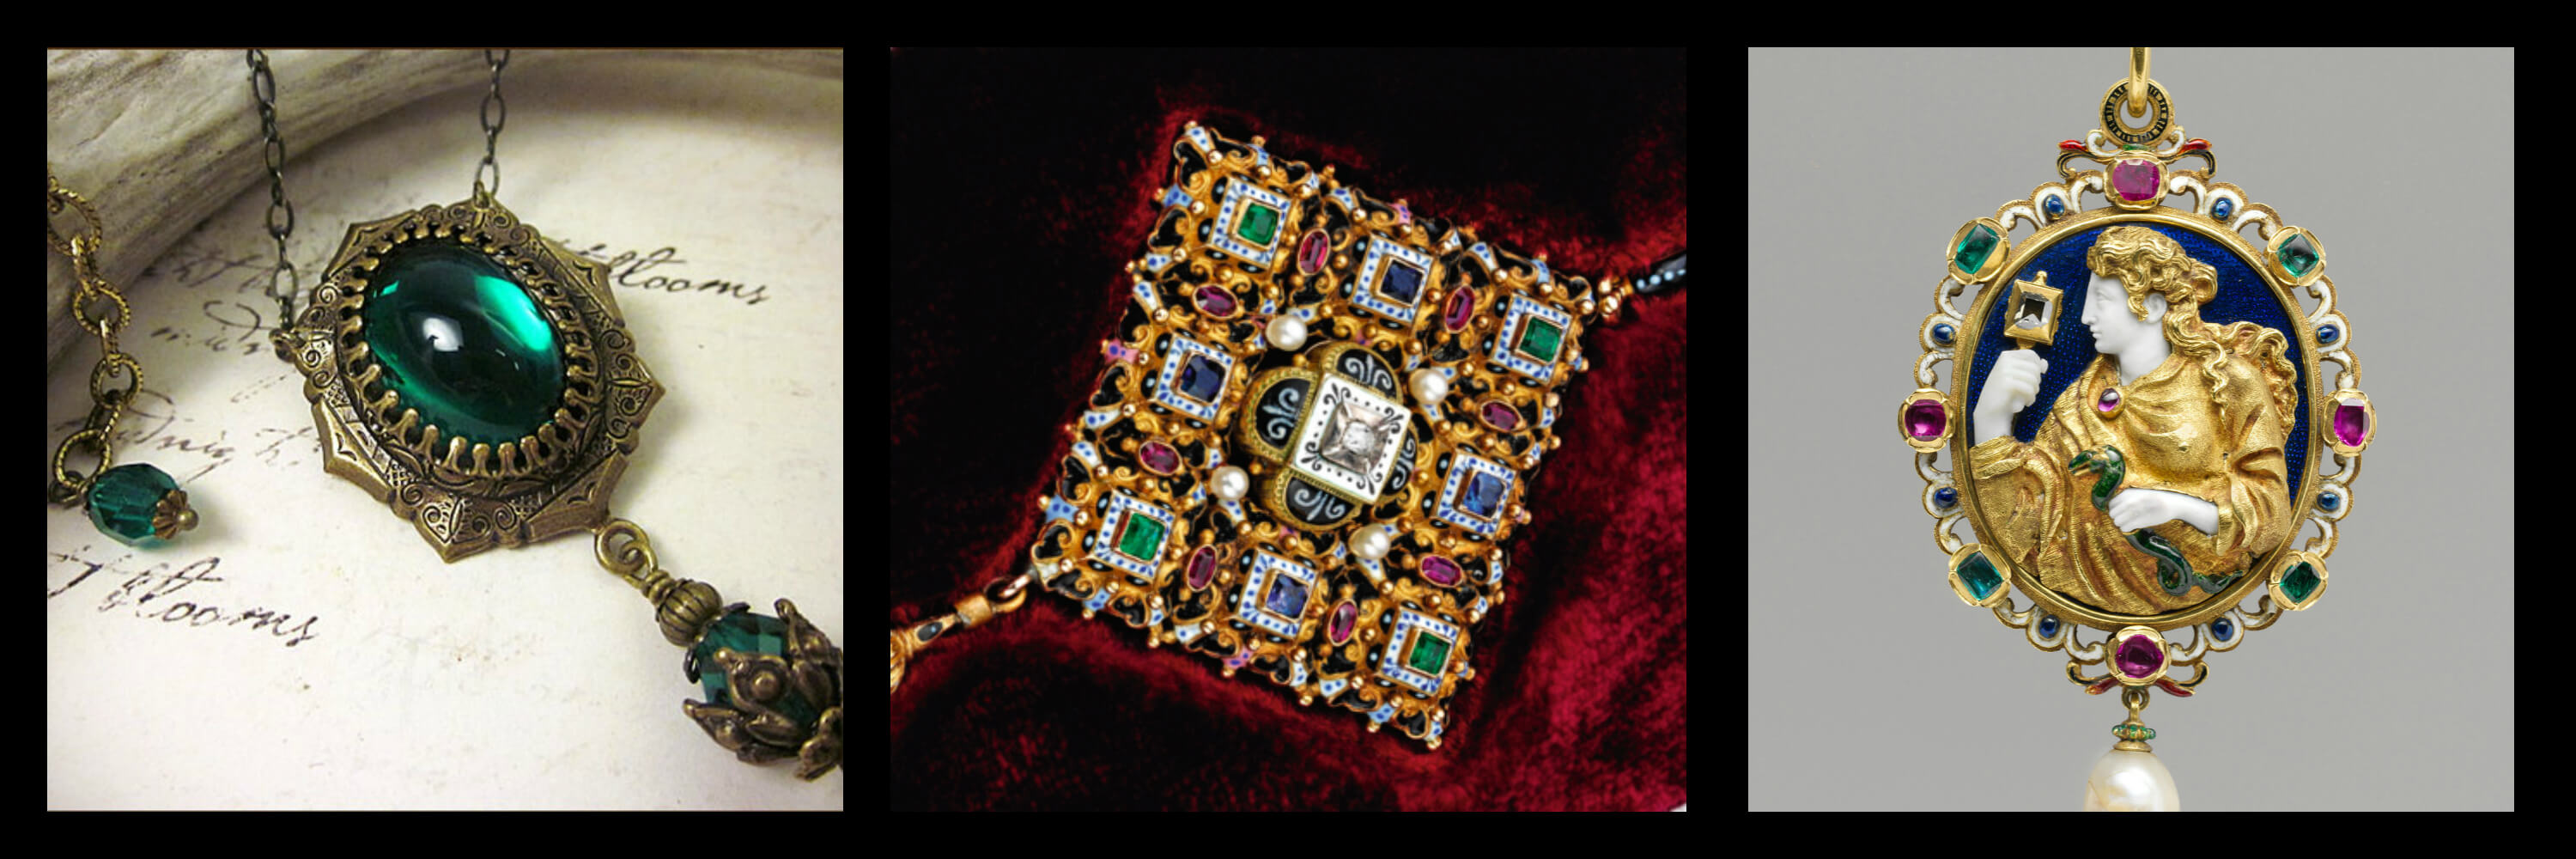 Examples of Renaissance Jewellery